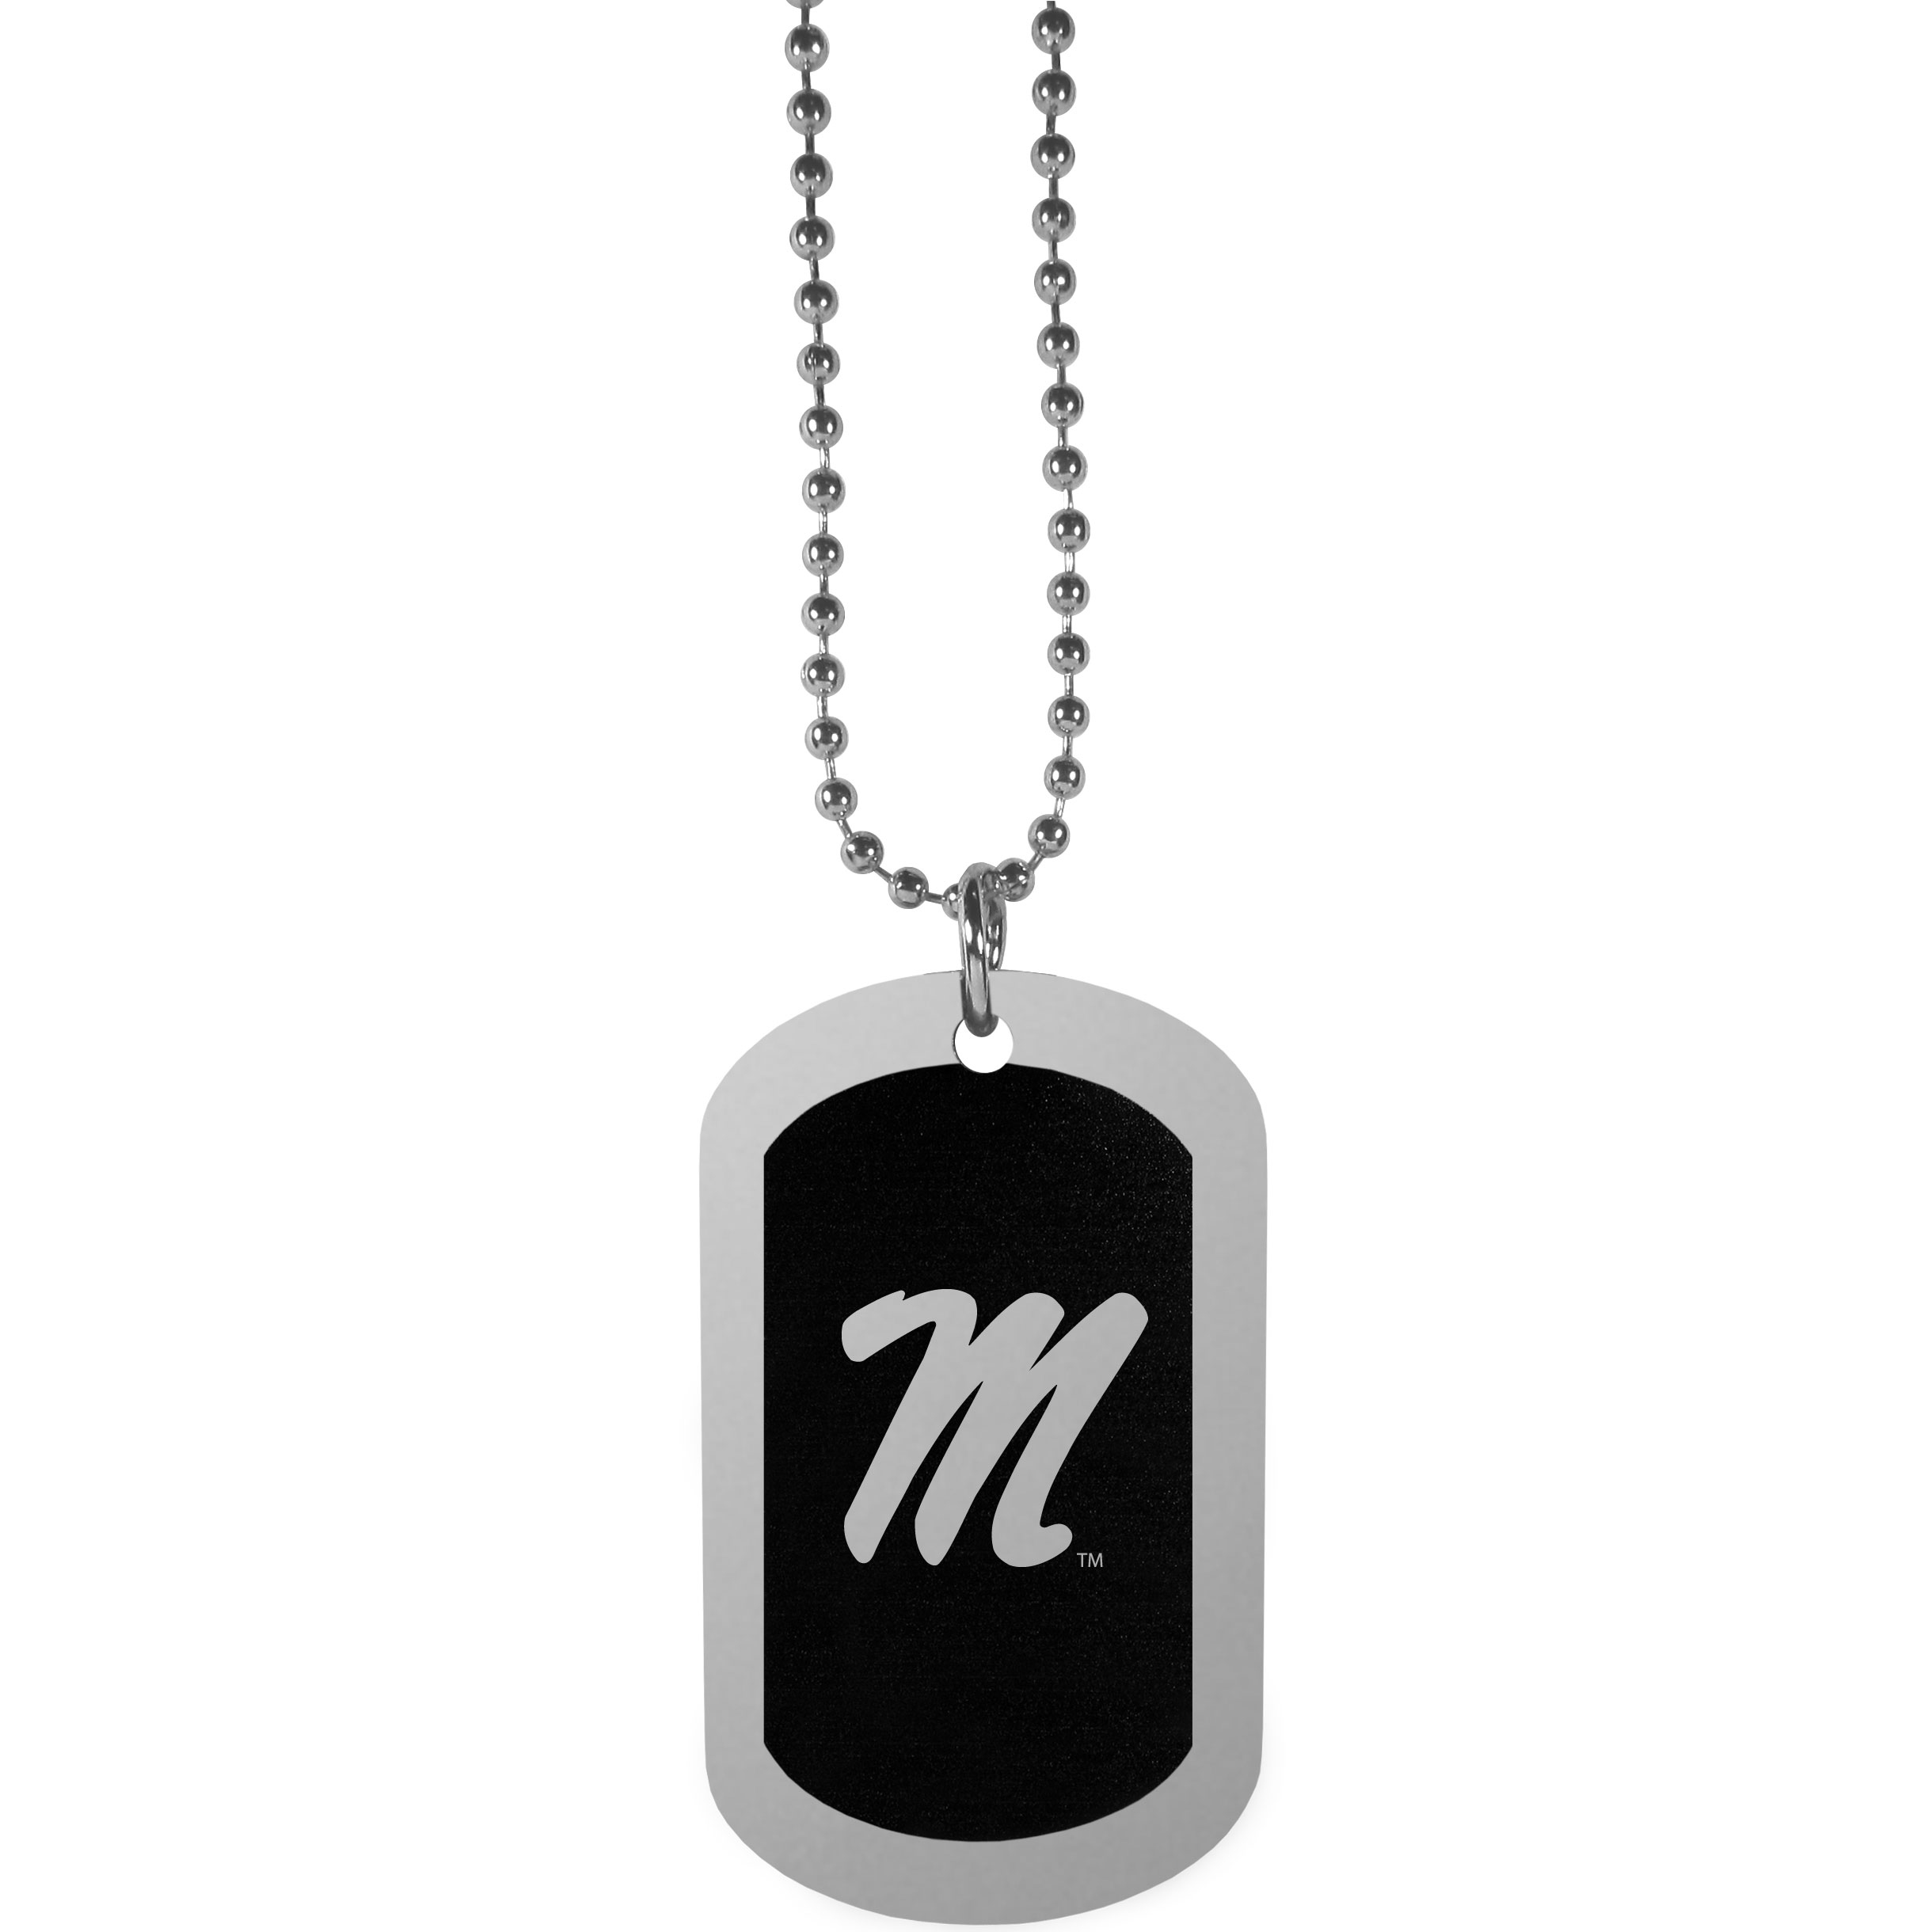 Mississippi Rebels Chrome Tag Necklace - Dog tag necklaces are a fashion statement that is here to stay. The sporty version of the classic tag features a black printed over a high polish tag to create a bold and sporty look. The tag comes on a 26 inch ball chain with a ball and joint clasp. Any Mississippi Rebels would be proud to wear this attractive fashion accessory.